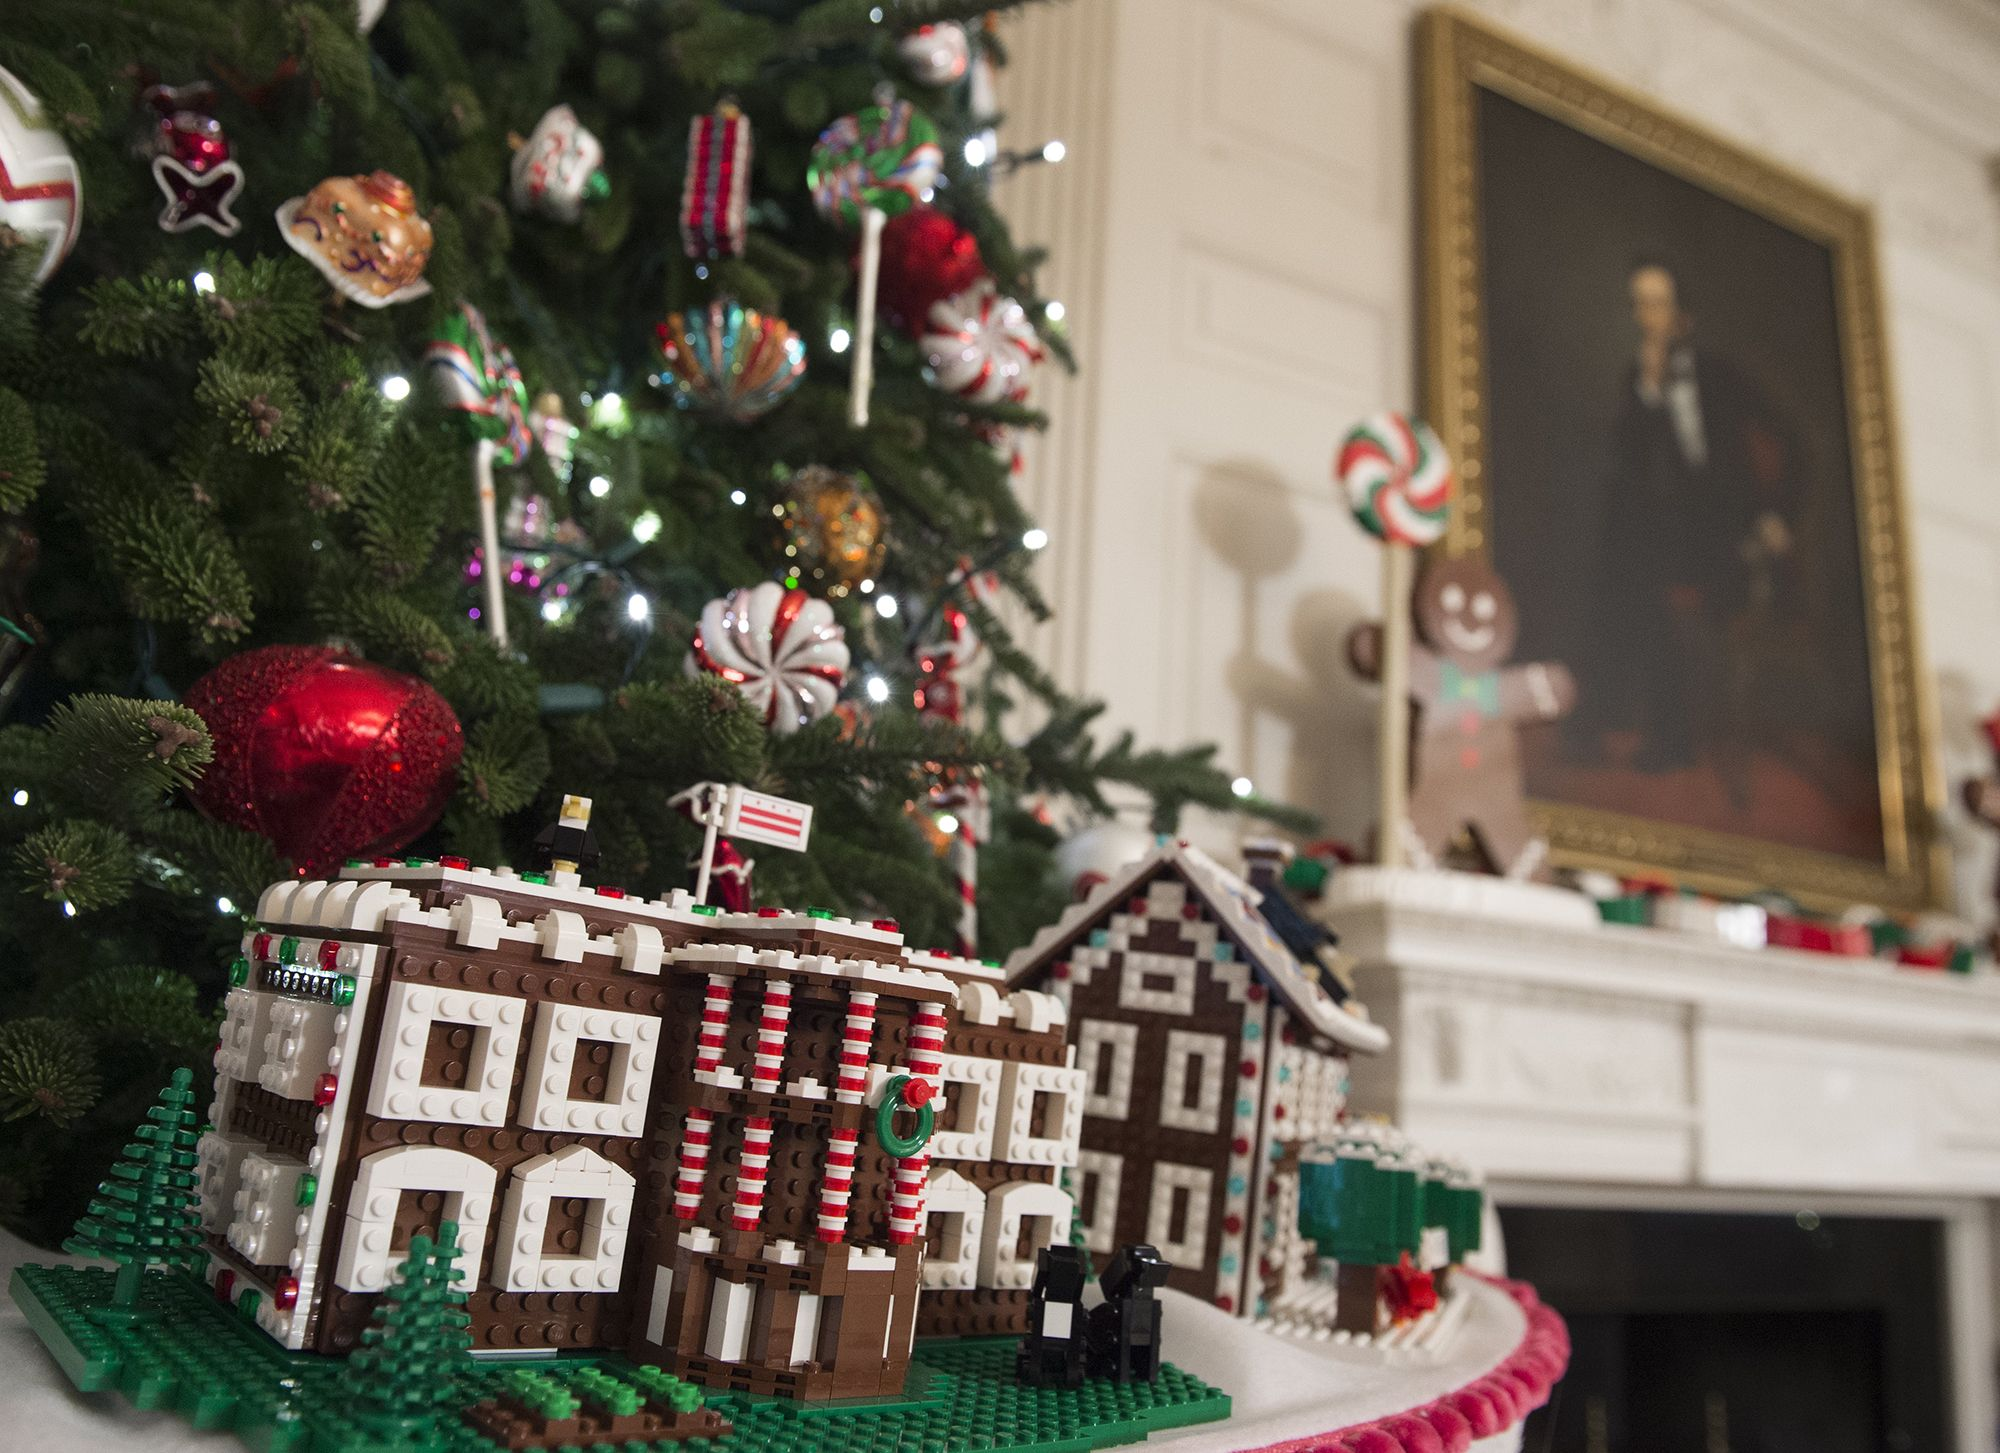 Michelle Obama Welcomes Military Families To View White House Holiday Decorations Holiday Decor White House Christmas Xmas Decorations